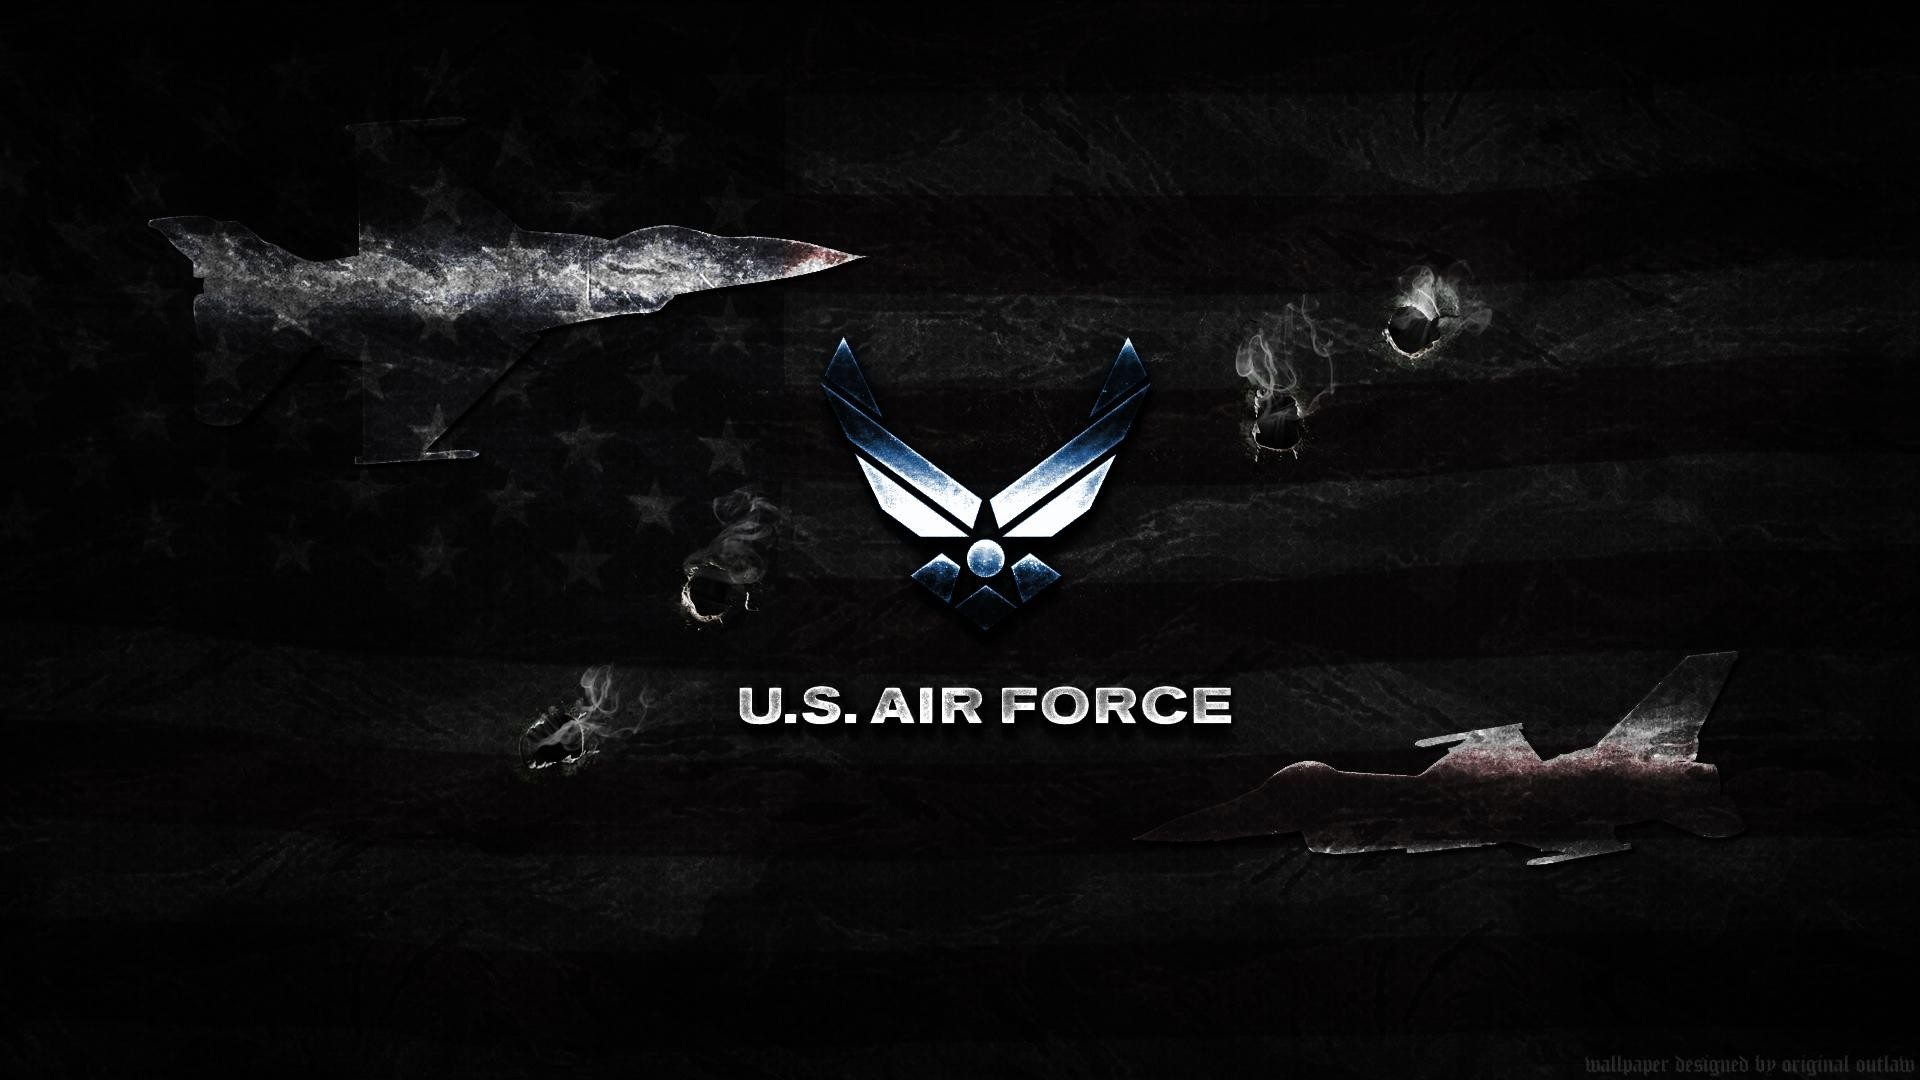 Air Force wallpaper ·① Download free awesome High ...